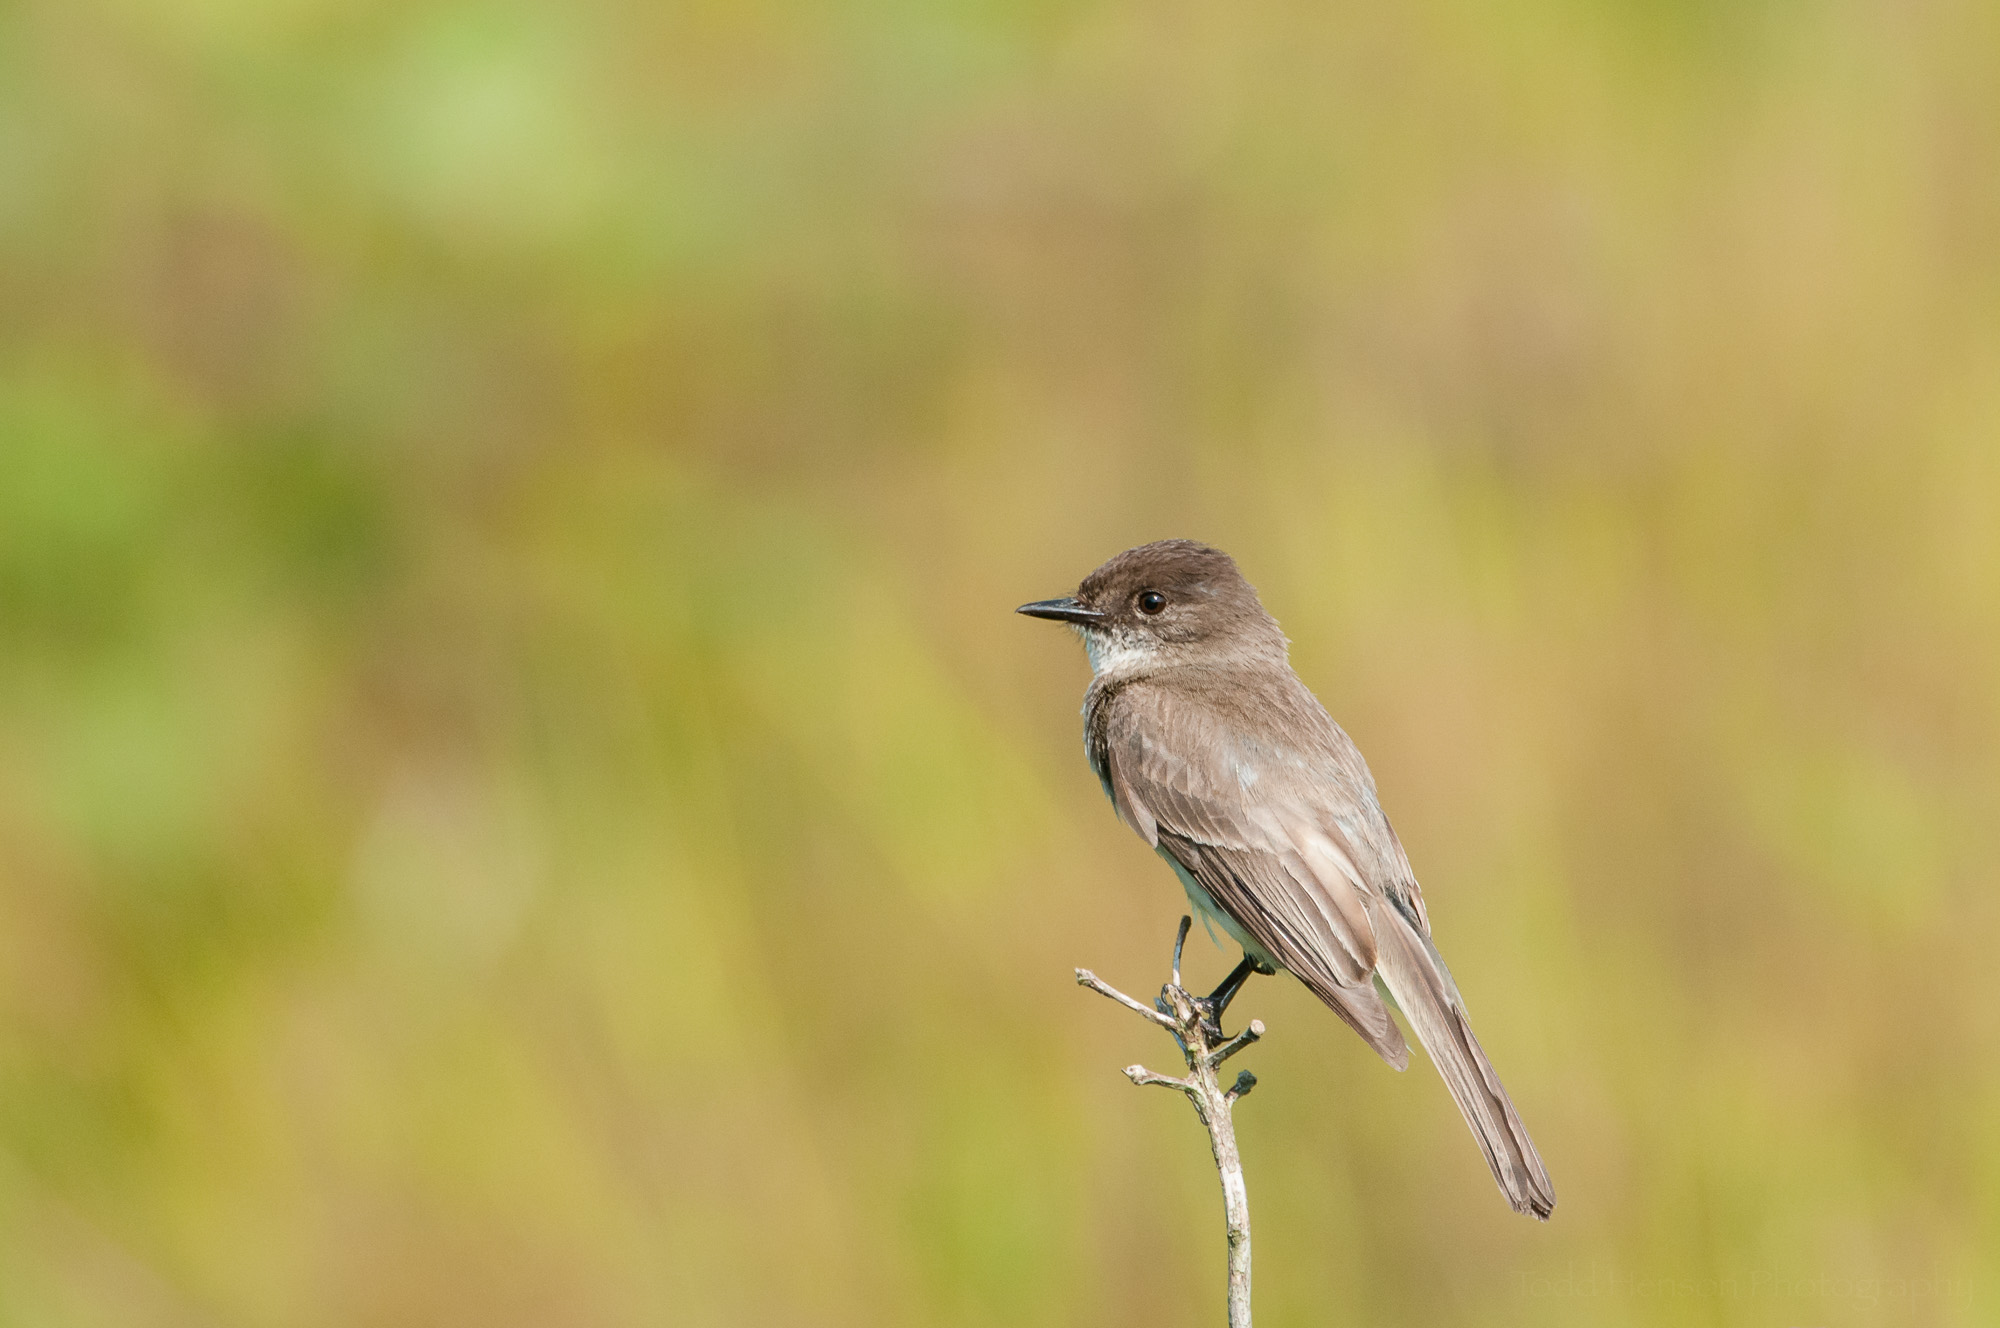 Eastern Phoebe looking to the left